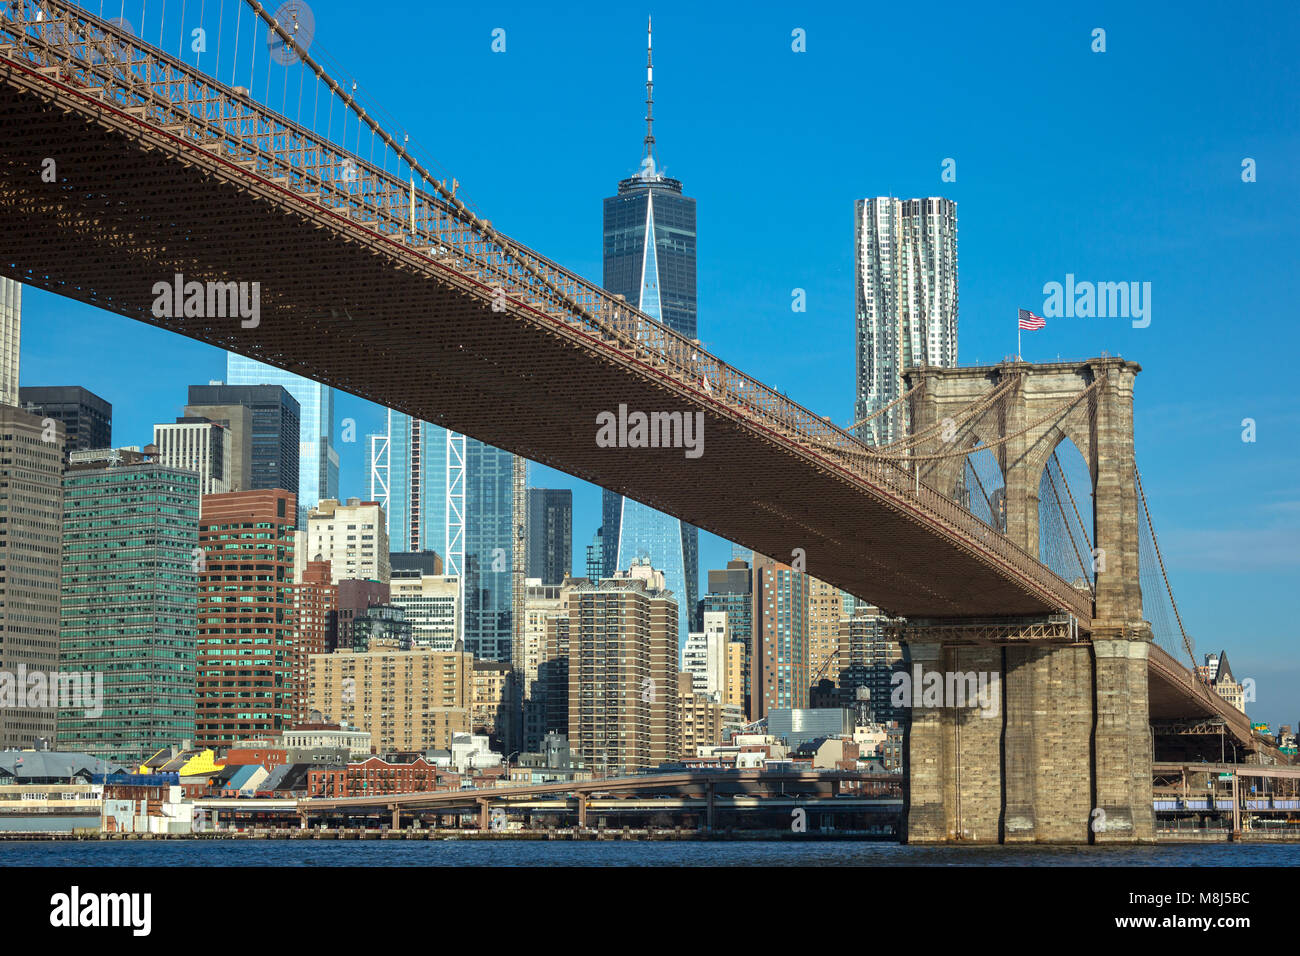 BROOKLYN BRIDGE (© J&W ROEBLING 1876) DOWNTOWN SKYLINE EAST RIVER BROOKLYN, NEW YORK CITY, USA Stockbild